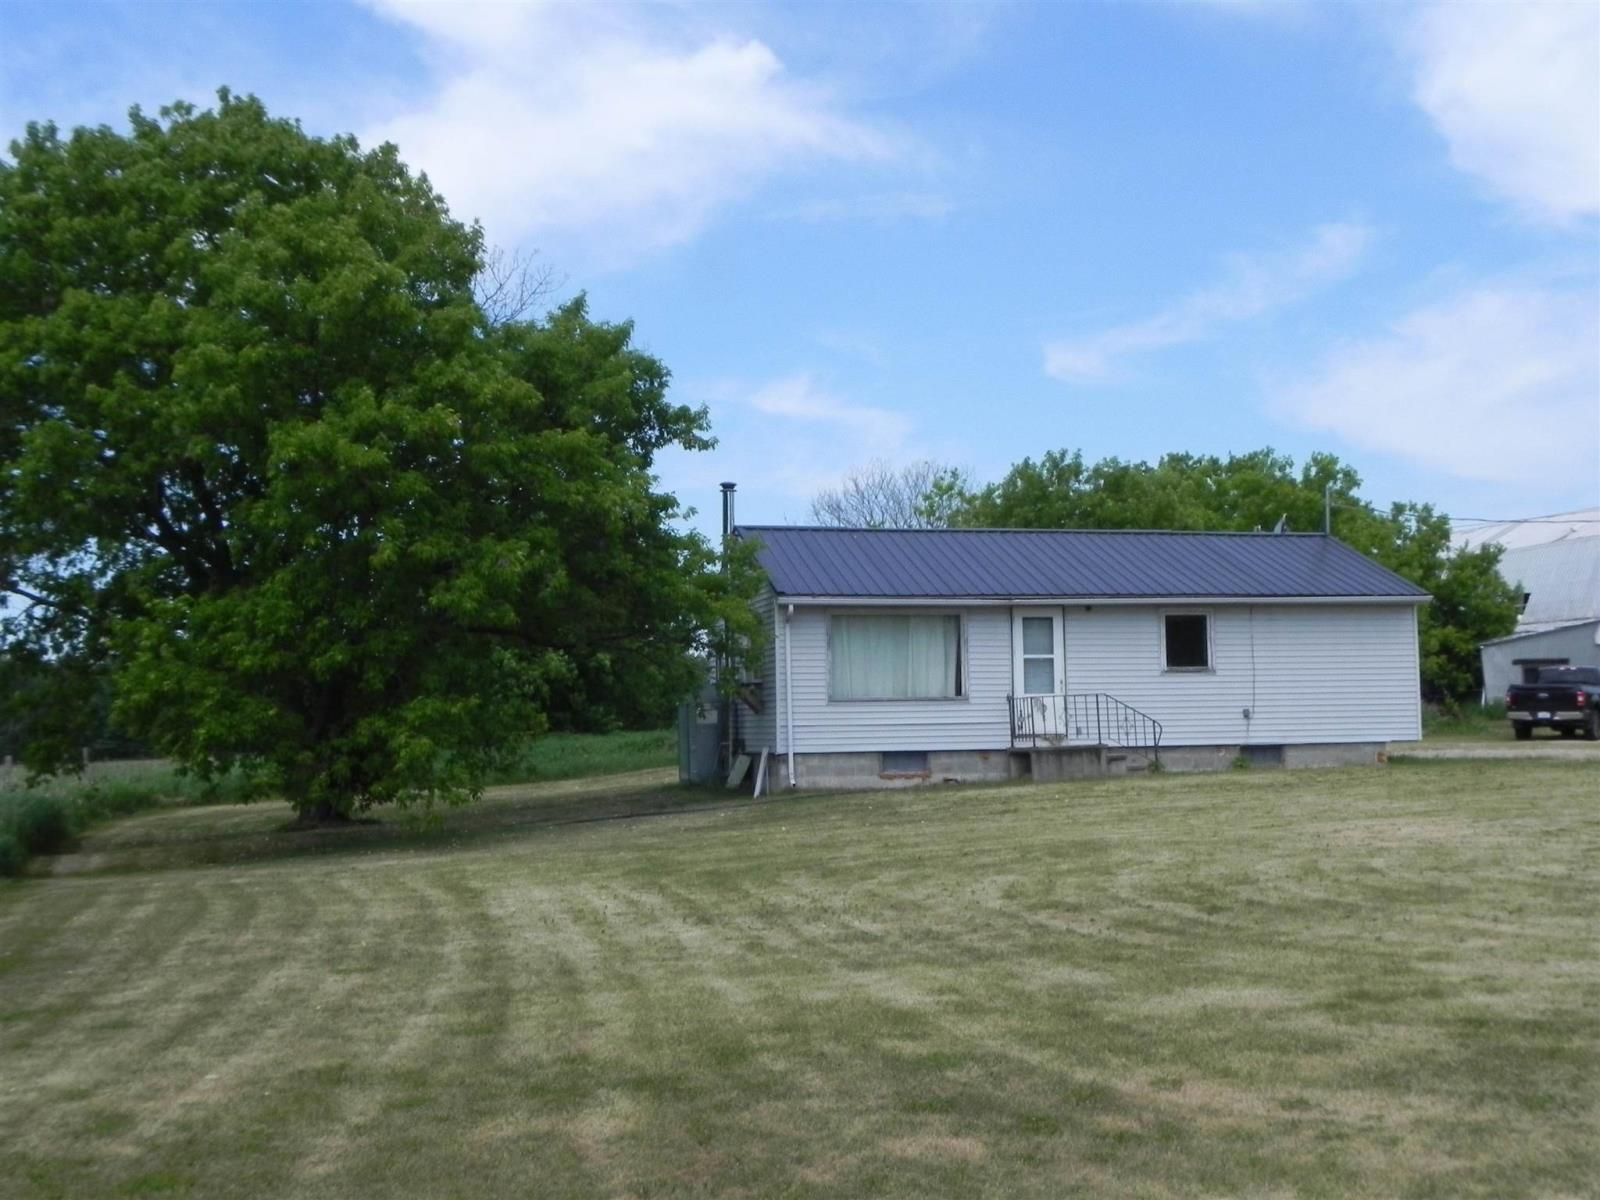 Main Photo: 201A 611 HWY N in Alberton Township: House for sale : MLS®# TB211618